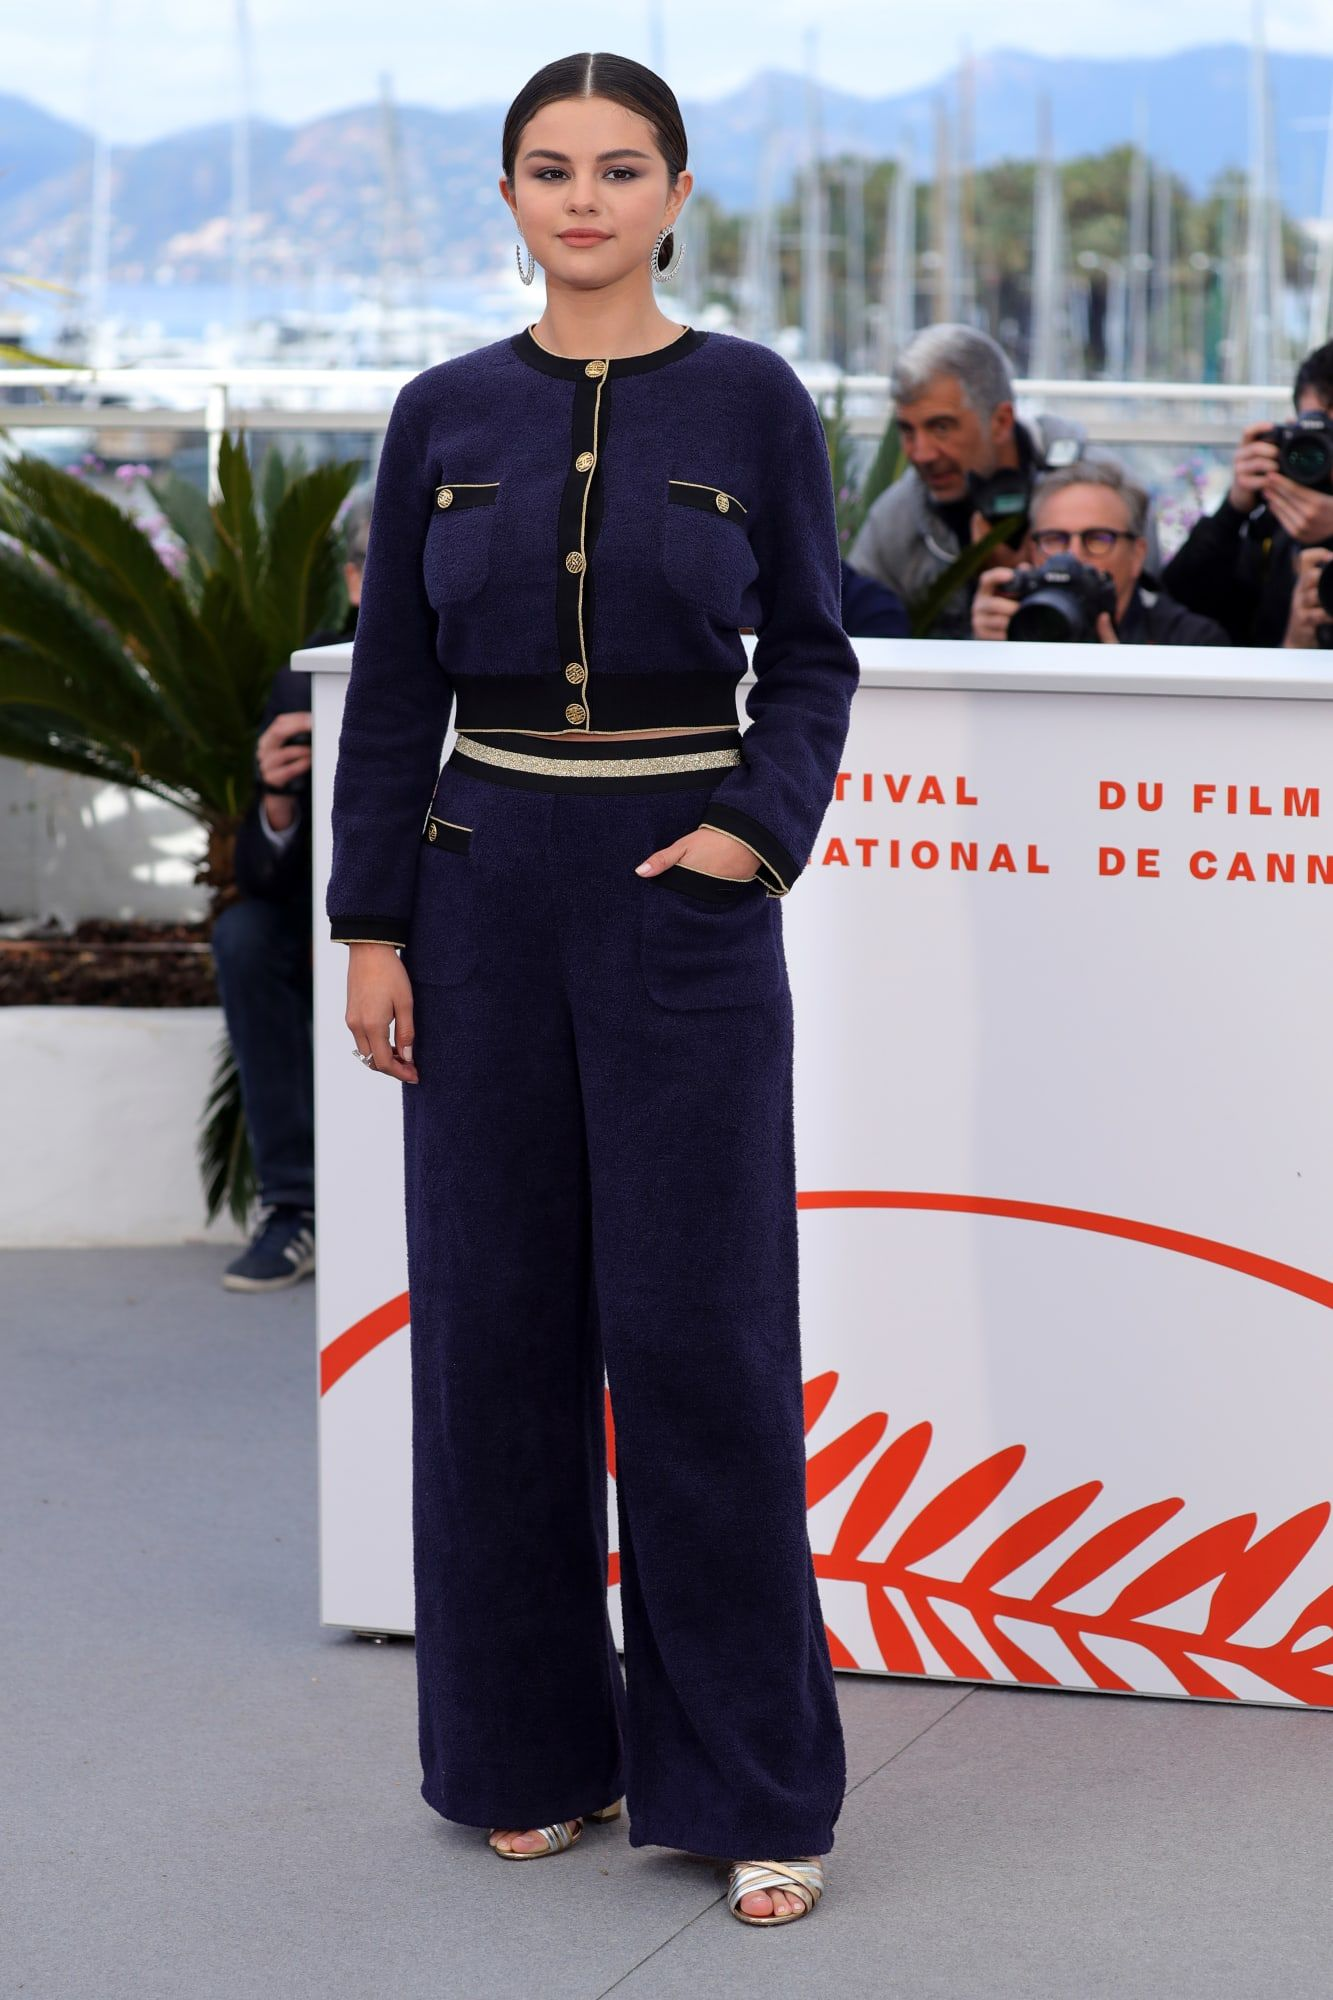 See the Best Red Carpet Looks From the 2019 Cannes Film